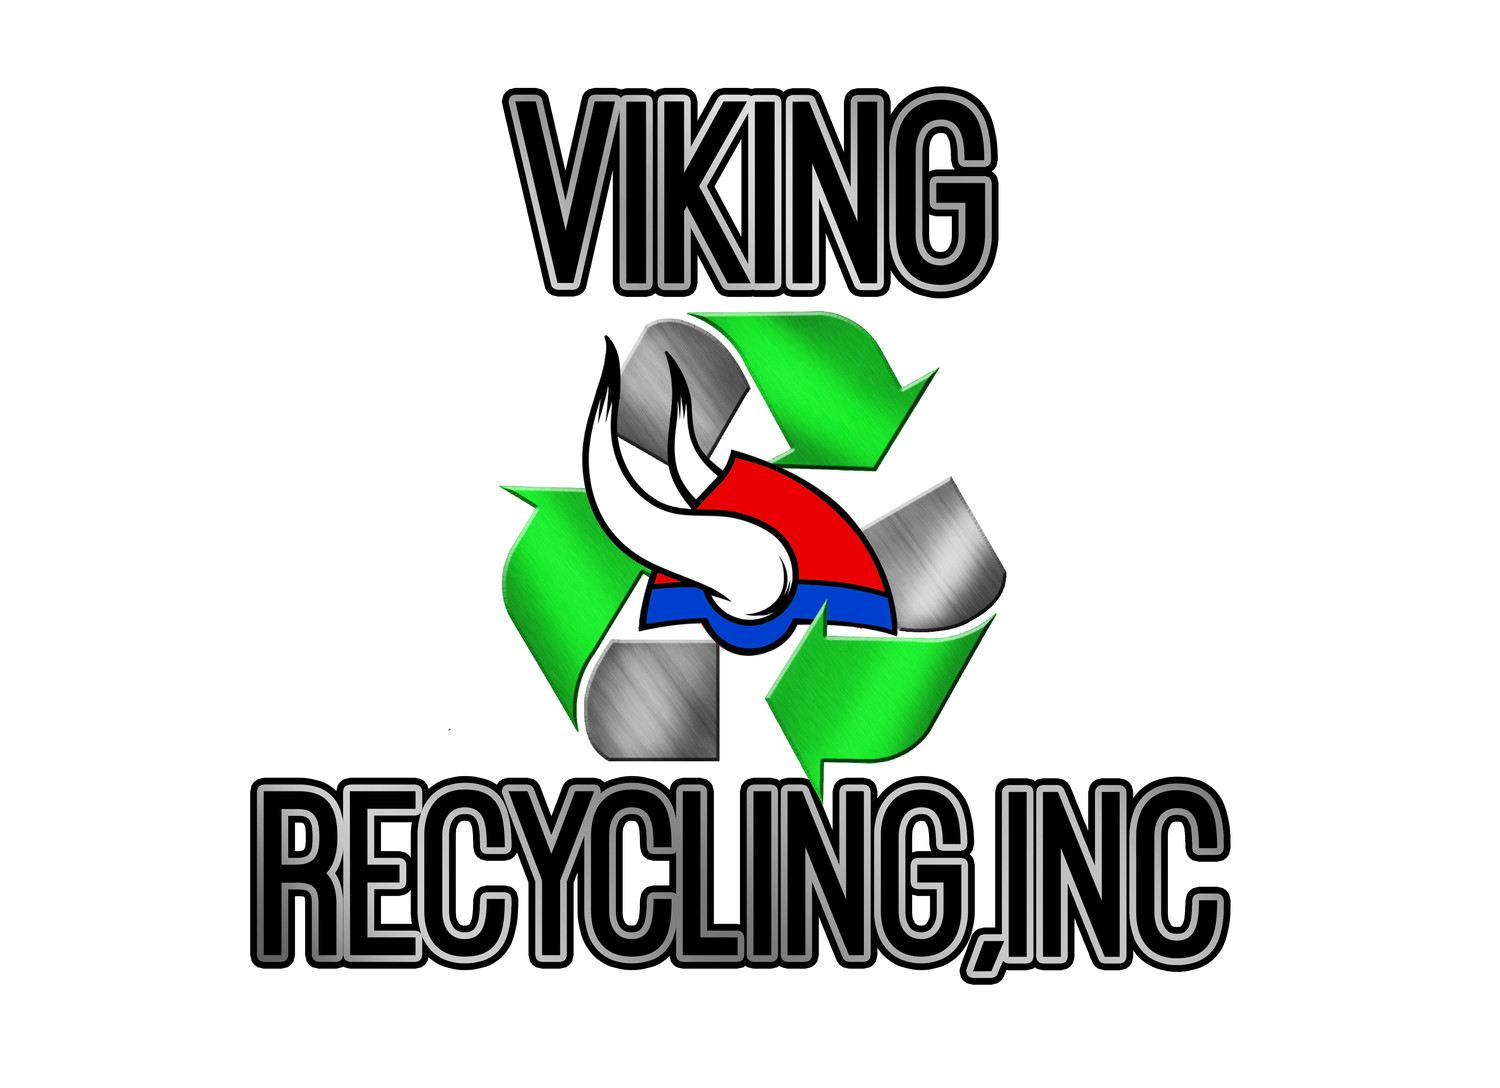 Viking Recycling